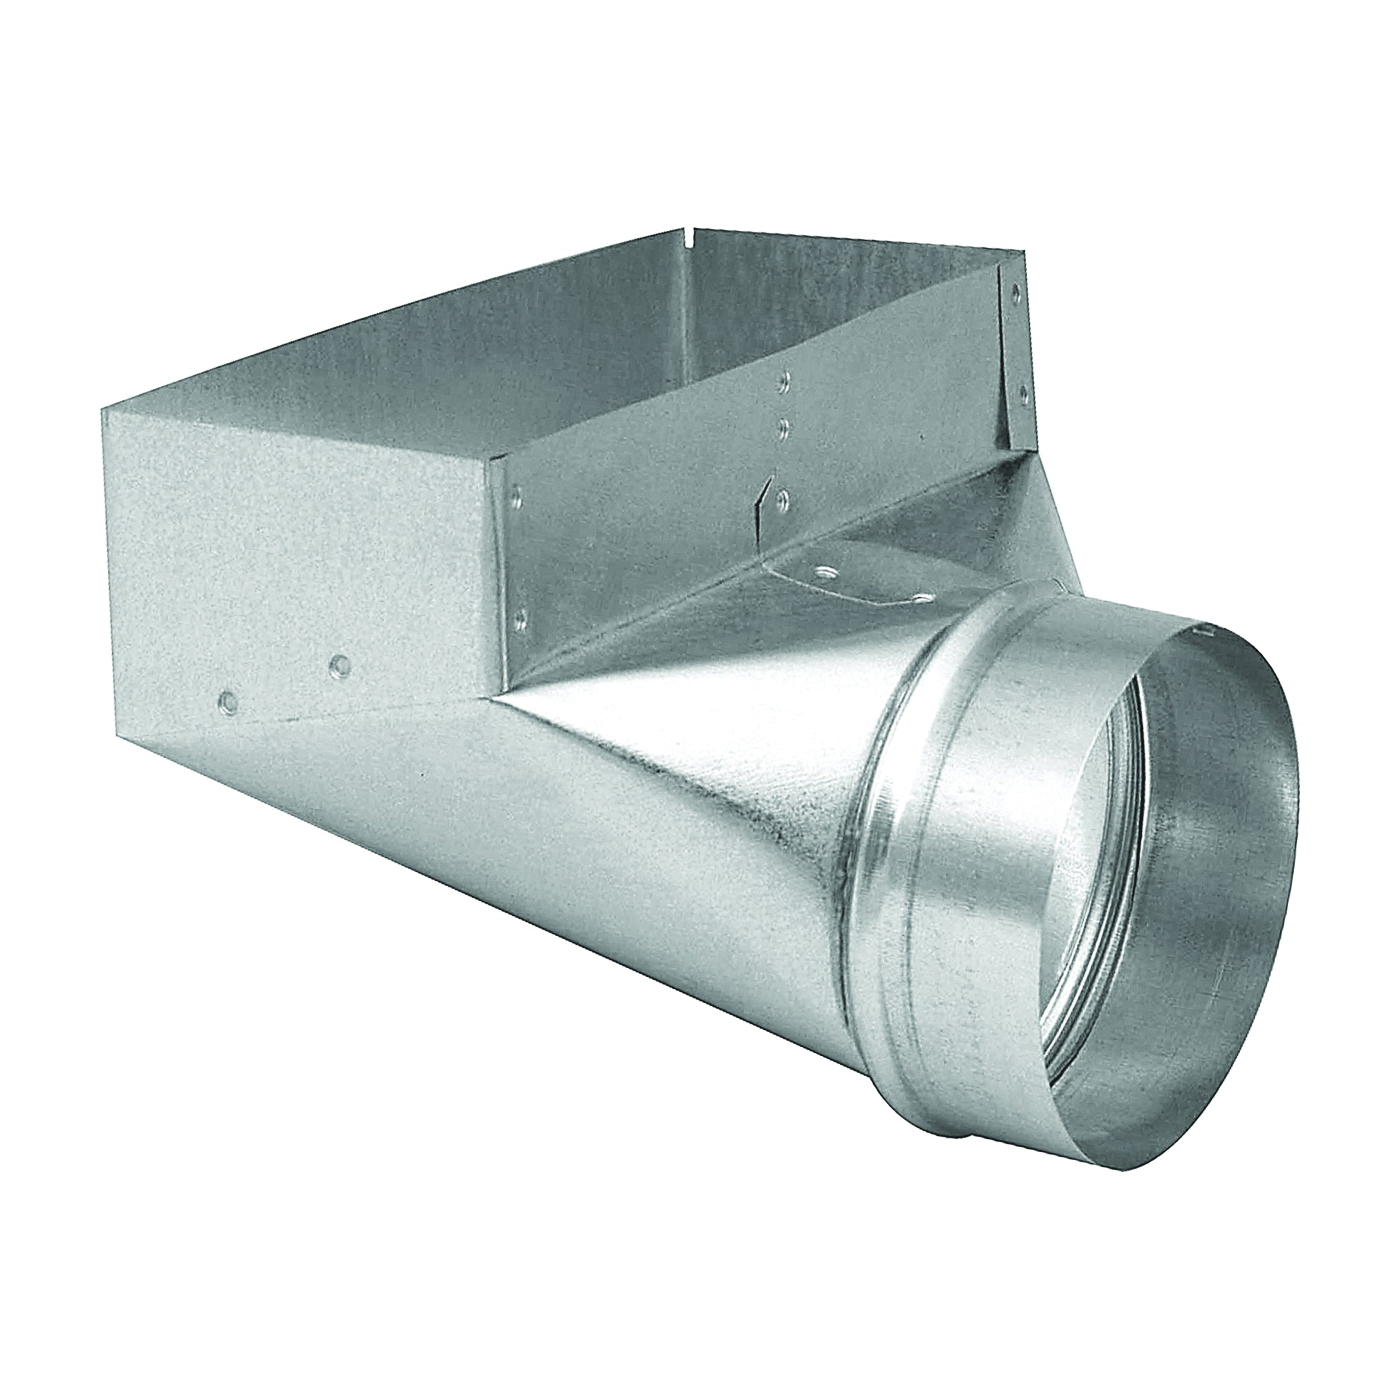 Picture of Imperial GV0613 Angle Boot, 3-1/4 in L, 10 in W, 5 in H, 90 deg Angle, Steel, Galvanized